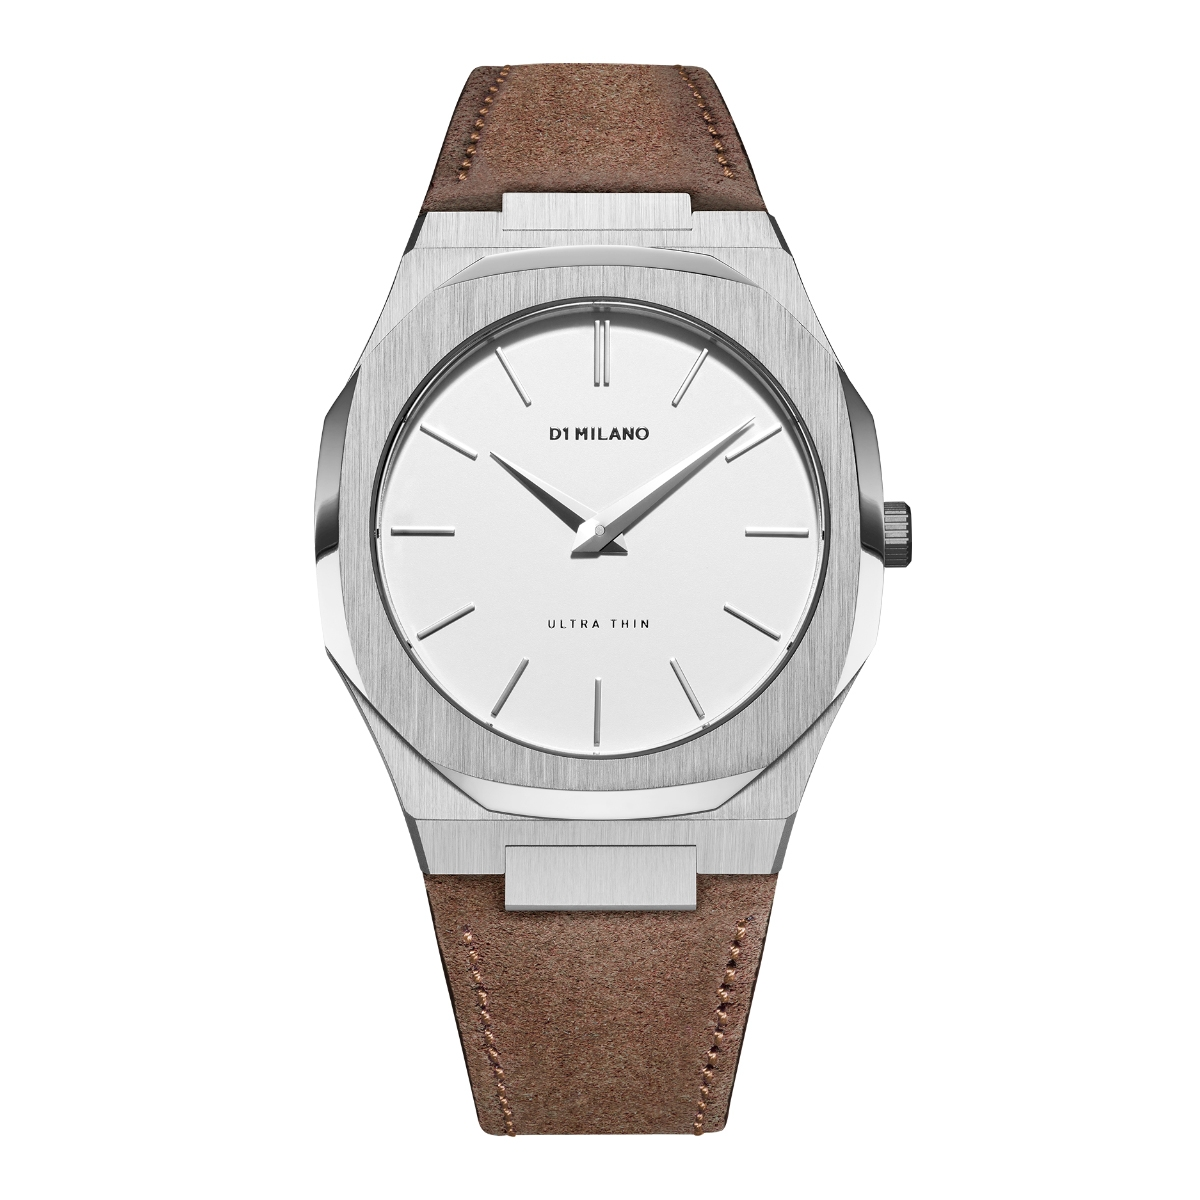 D1 MILANO ディーワンミラノ Ultra Thin Eggshel Dial with Suede Leather Brown Strap